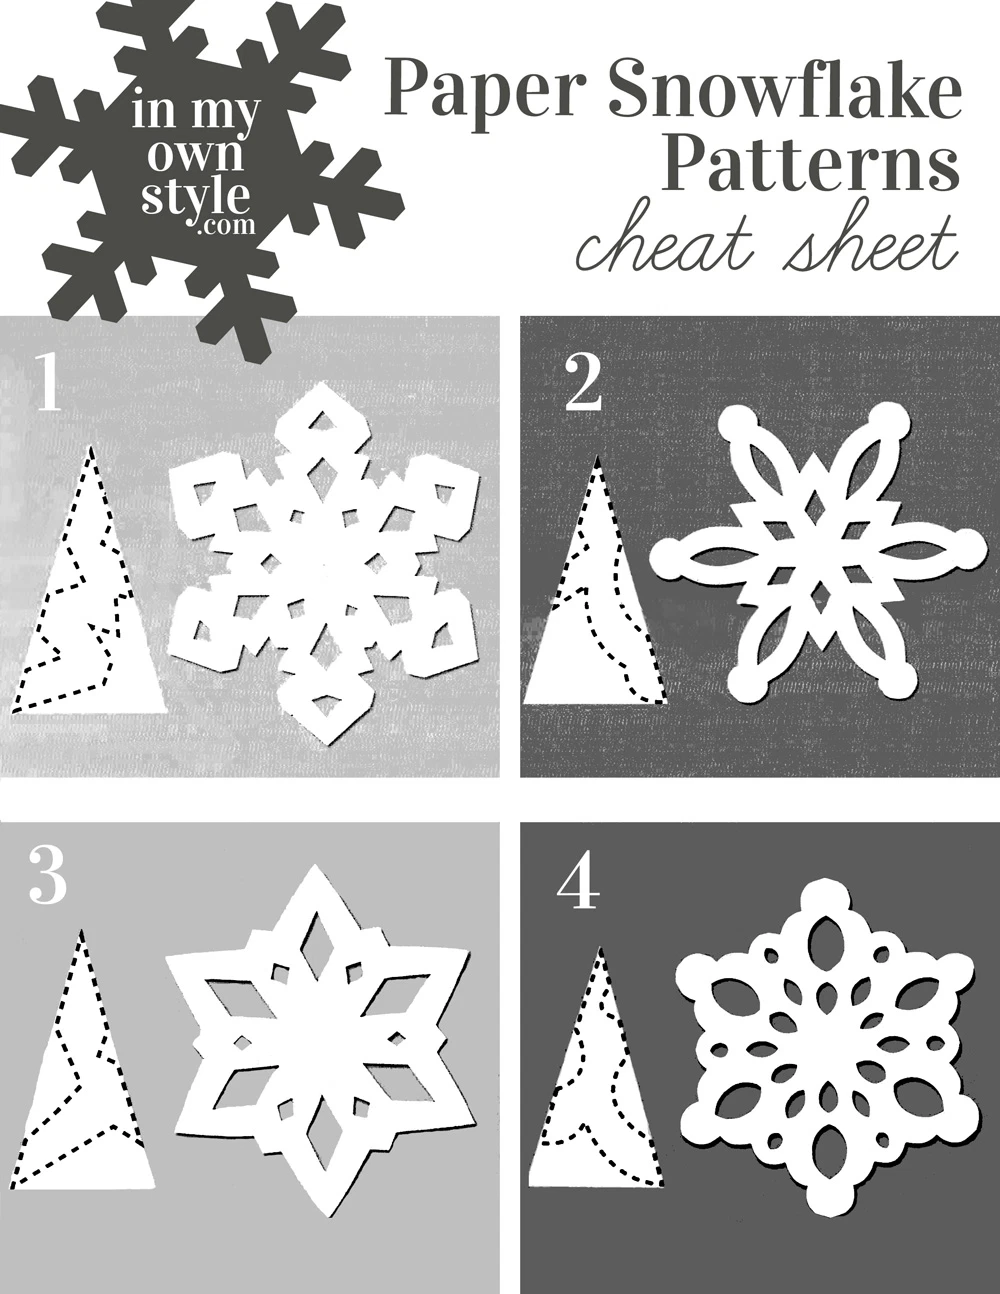 Keep this paper snowflake making pattern cheat sheet handy when you want to make festive snowflakes to decorate your home for the holidays. #papersnowflakes #snowflaketemplates #snowflakepatterns #papersnowflakesDIY #papersnowflakeseasy #papersnowflakeshowtomake